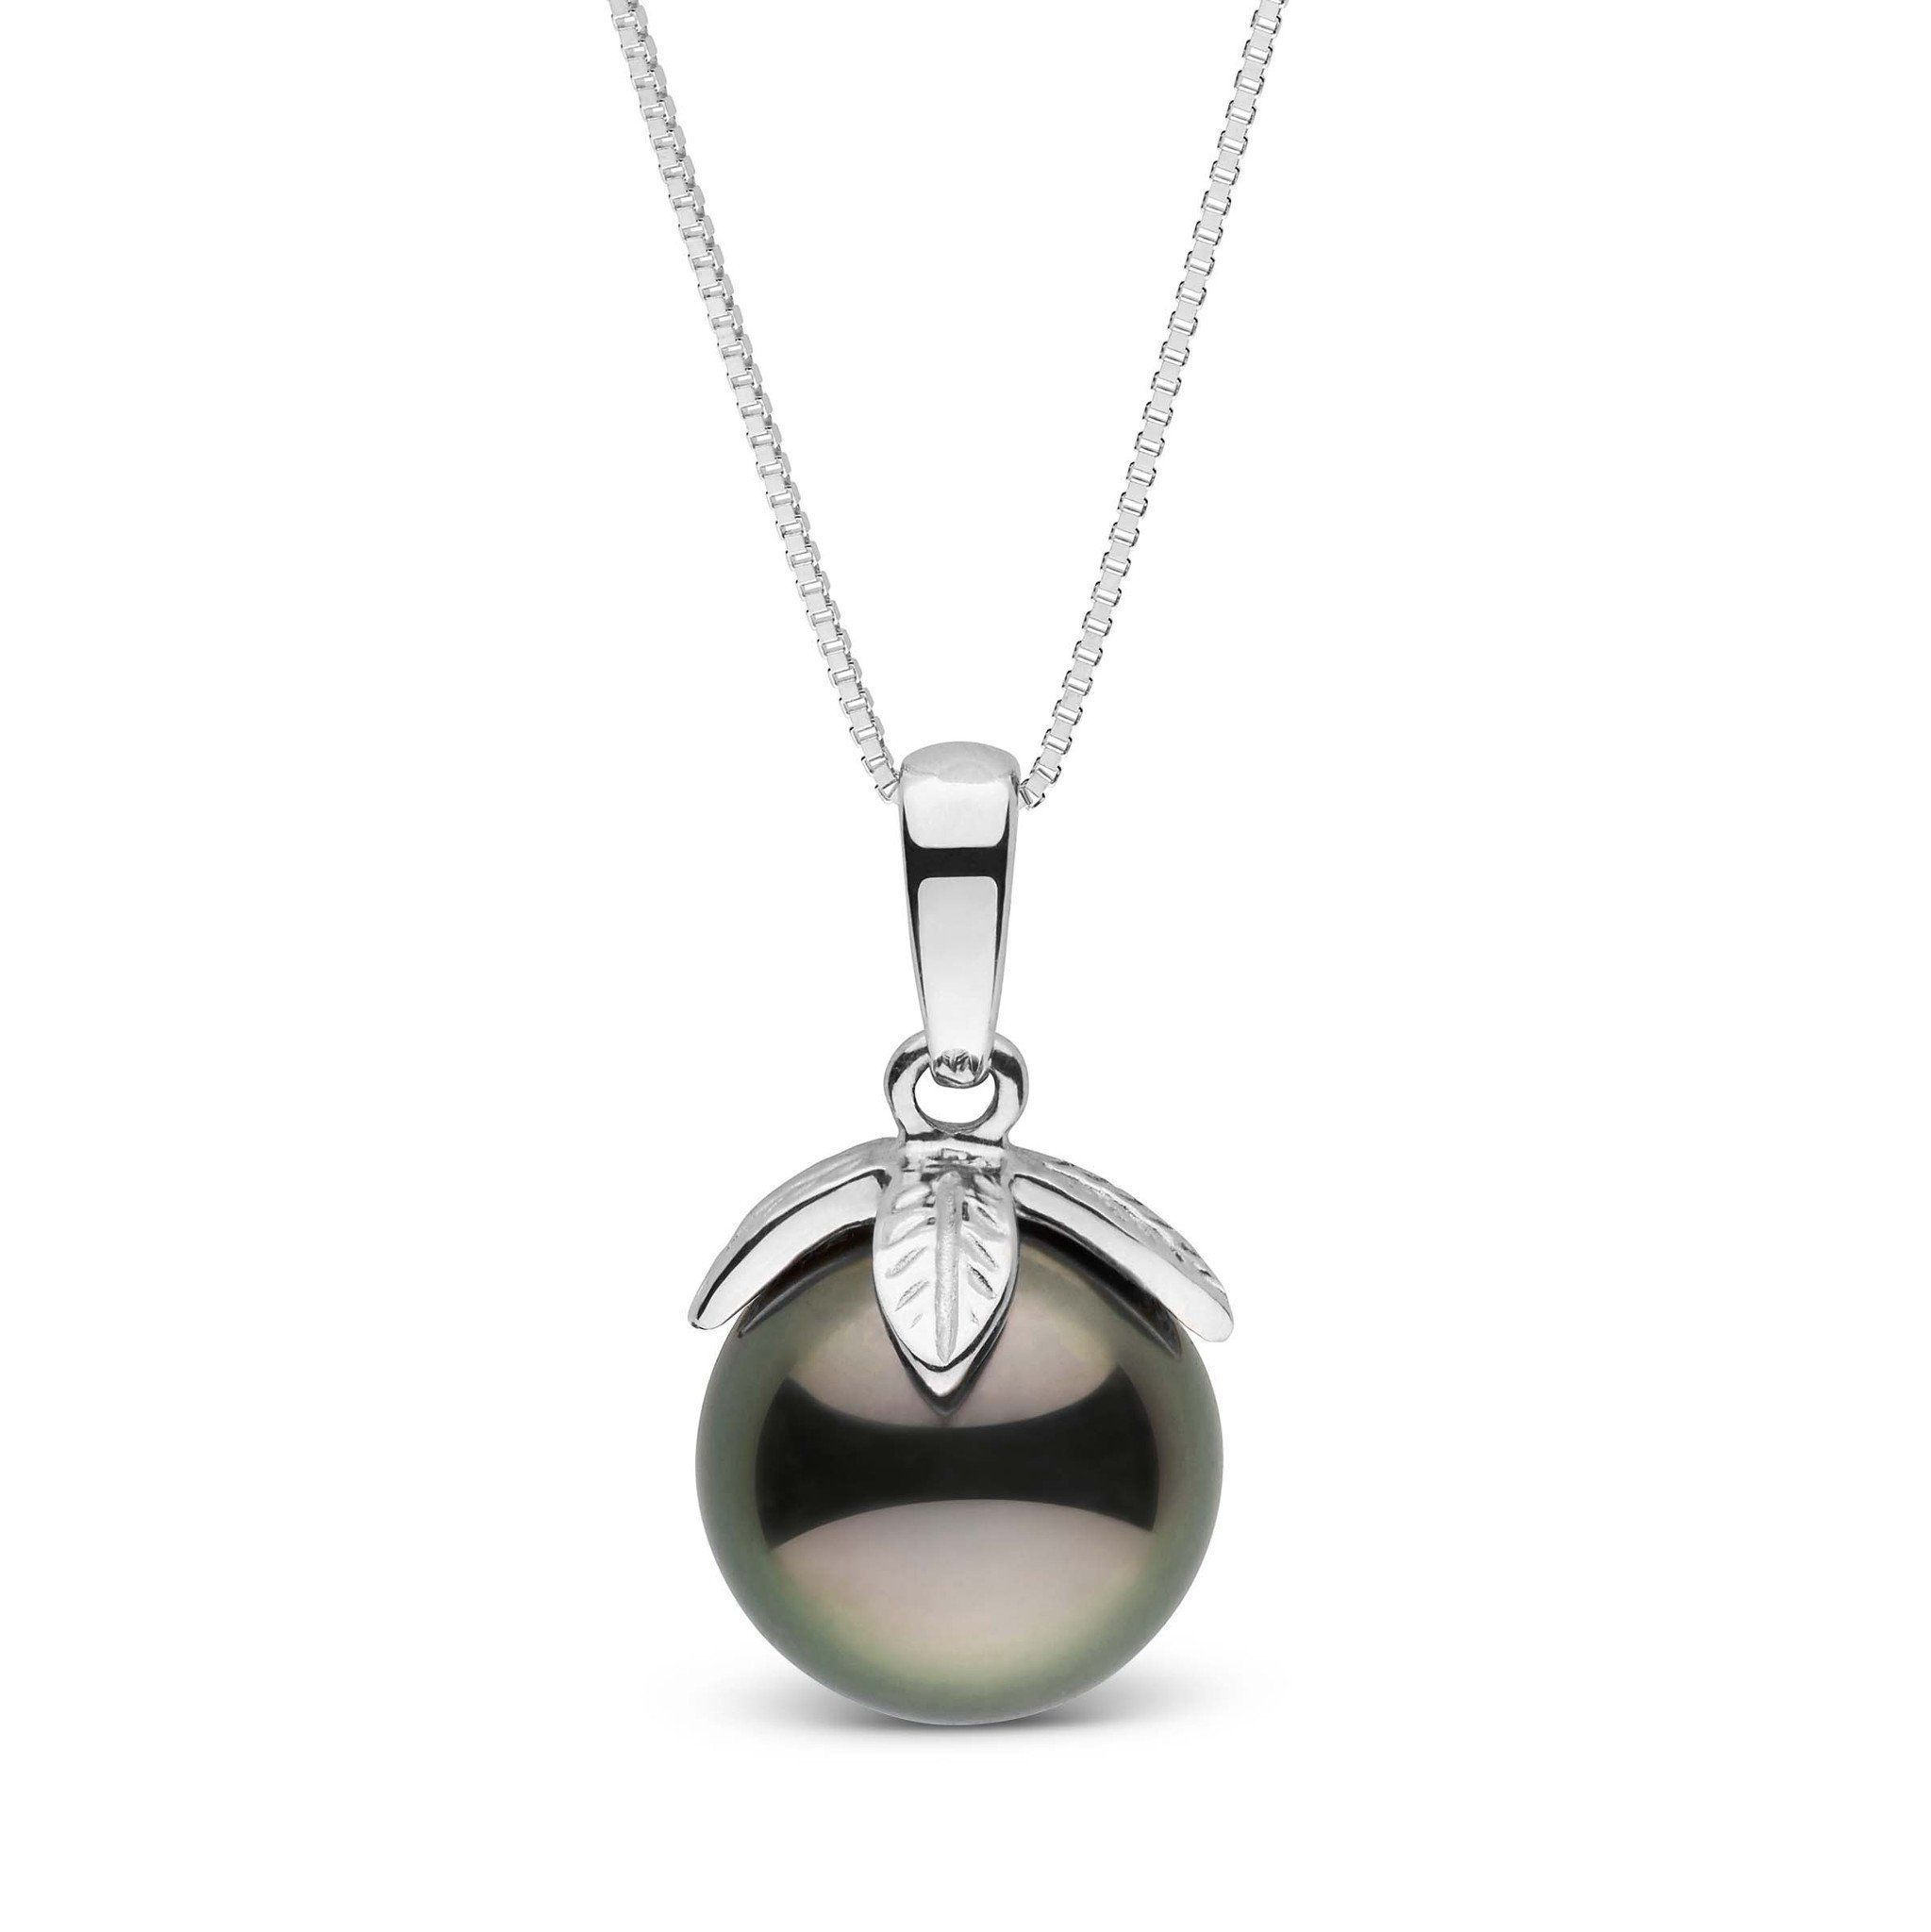 Leaf Collection 9.0-10.0 mm Tahitian Pearl Pendant